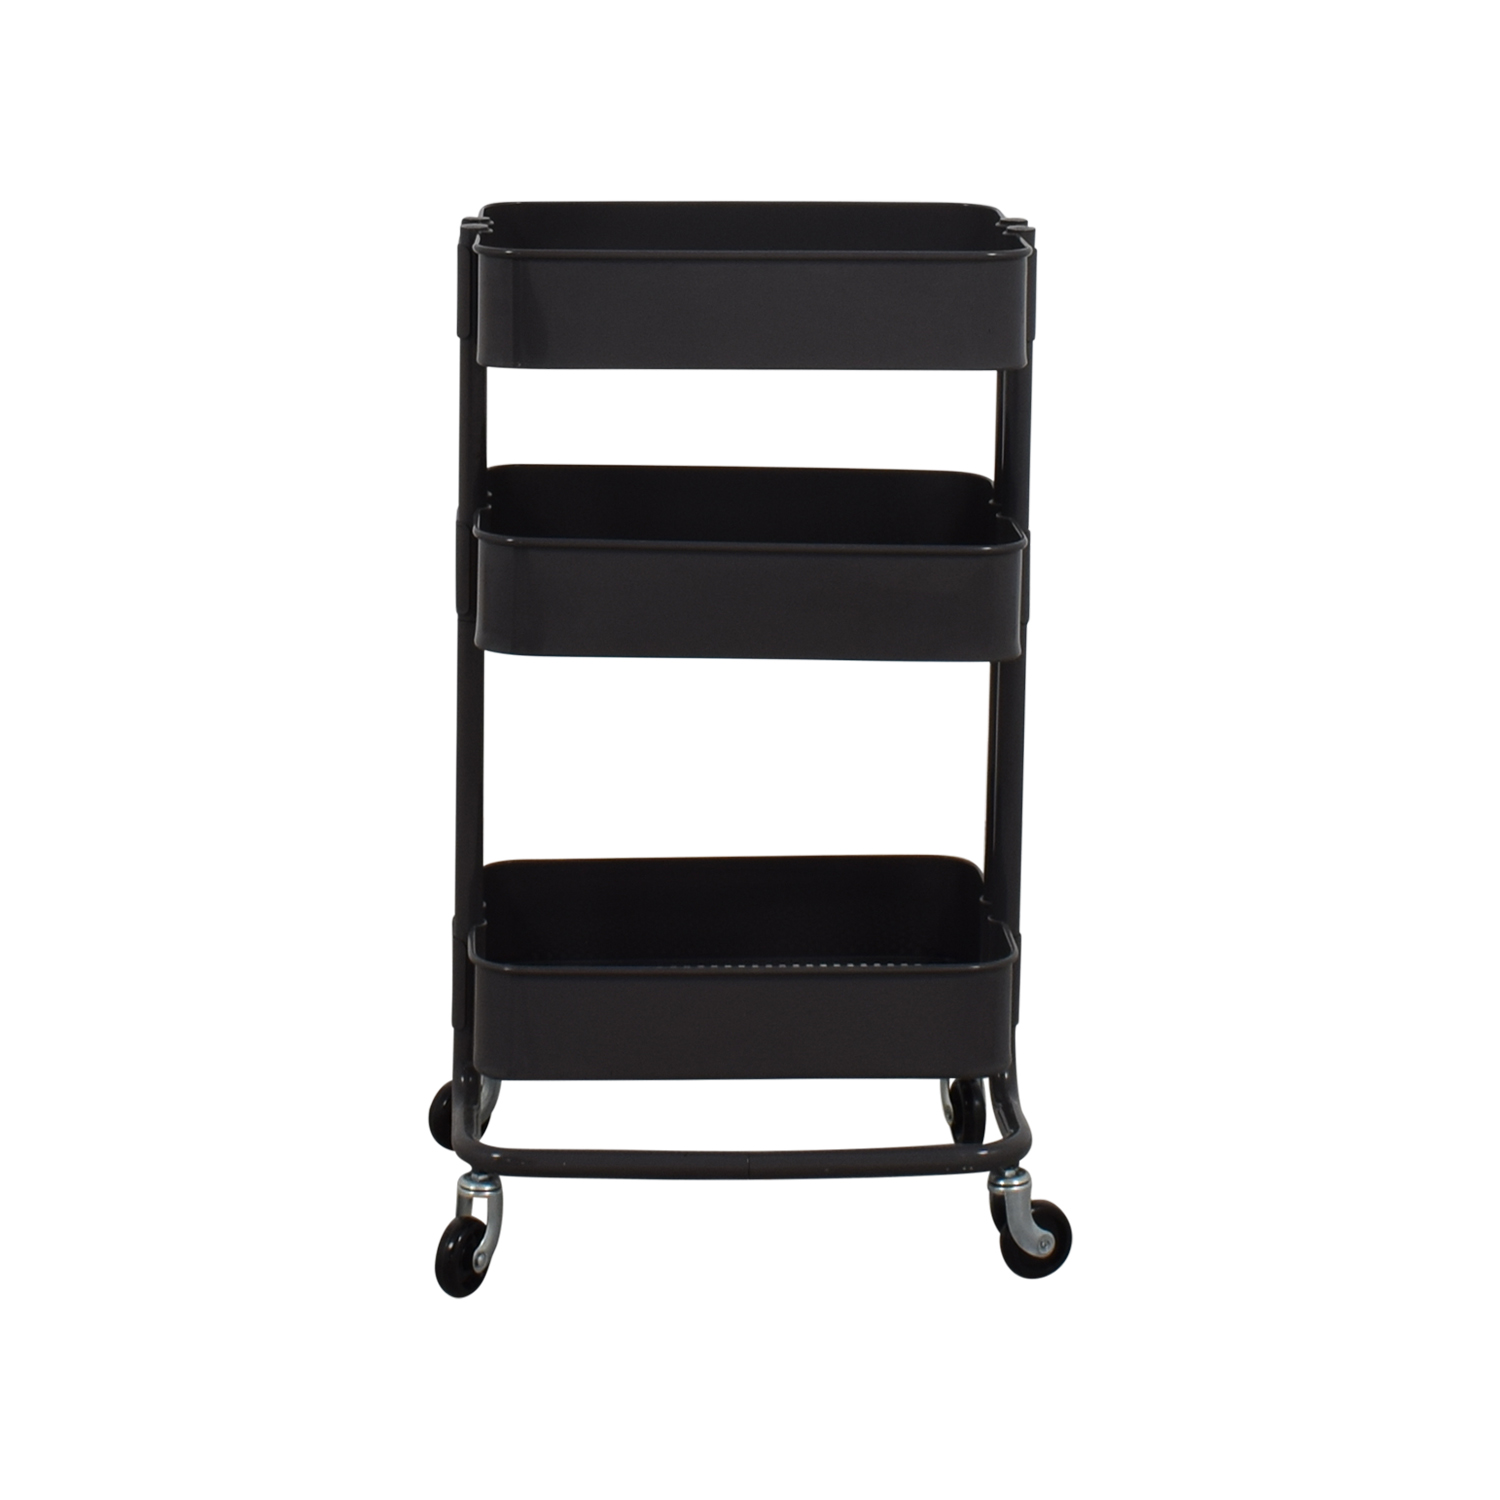 IKEA IKEA Raskog Utility Cart for sale